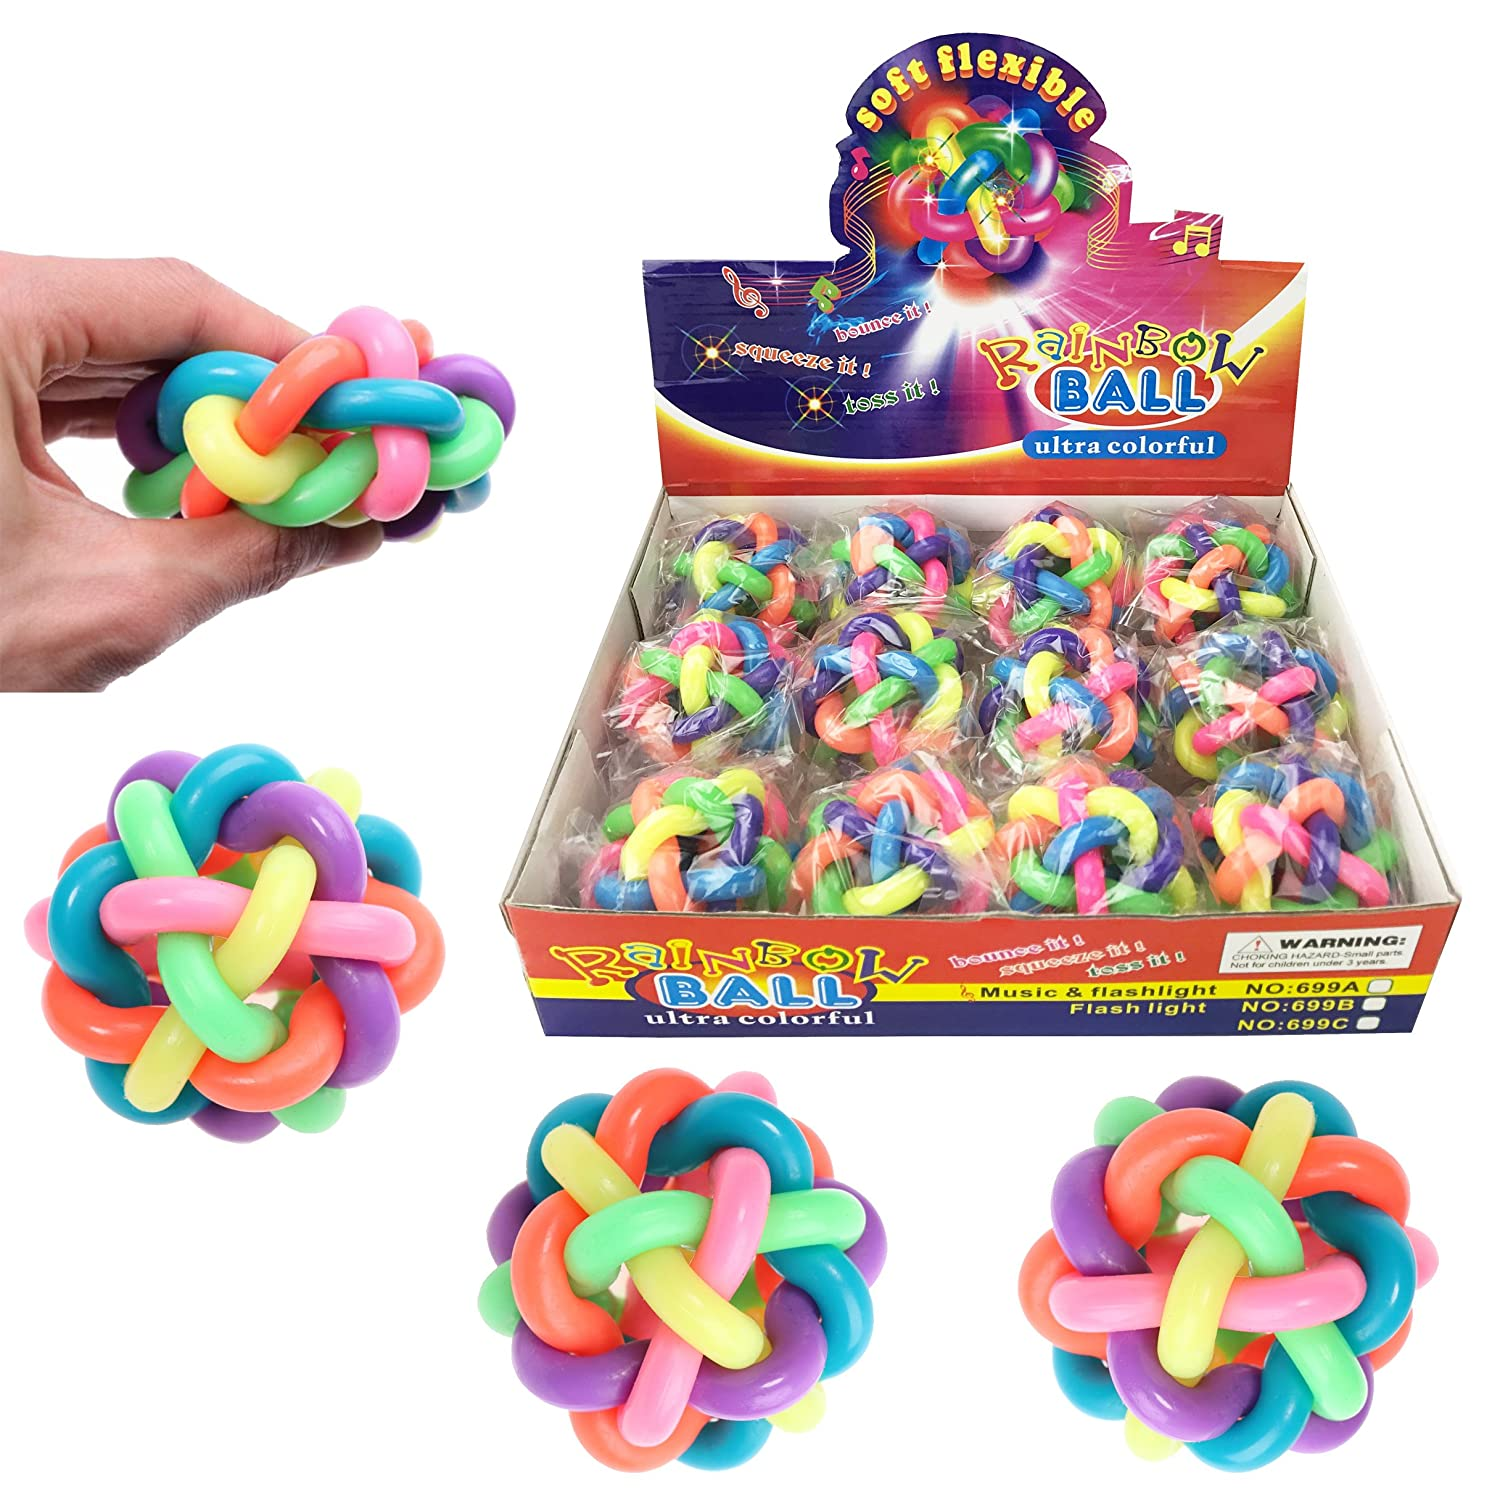 Set of 12 Bouncy Soft Fidget Balls - Stress Relief Rainbow Balls Squeeze Toys for Kids and Adults (6 Colors)